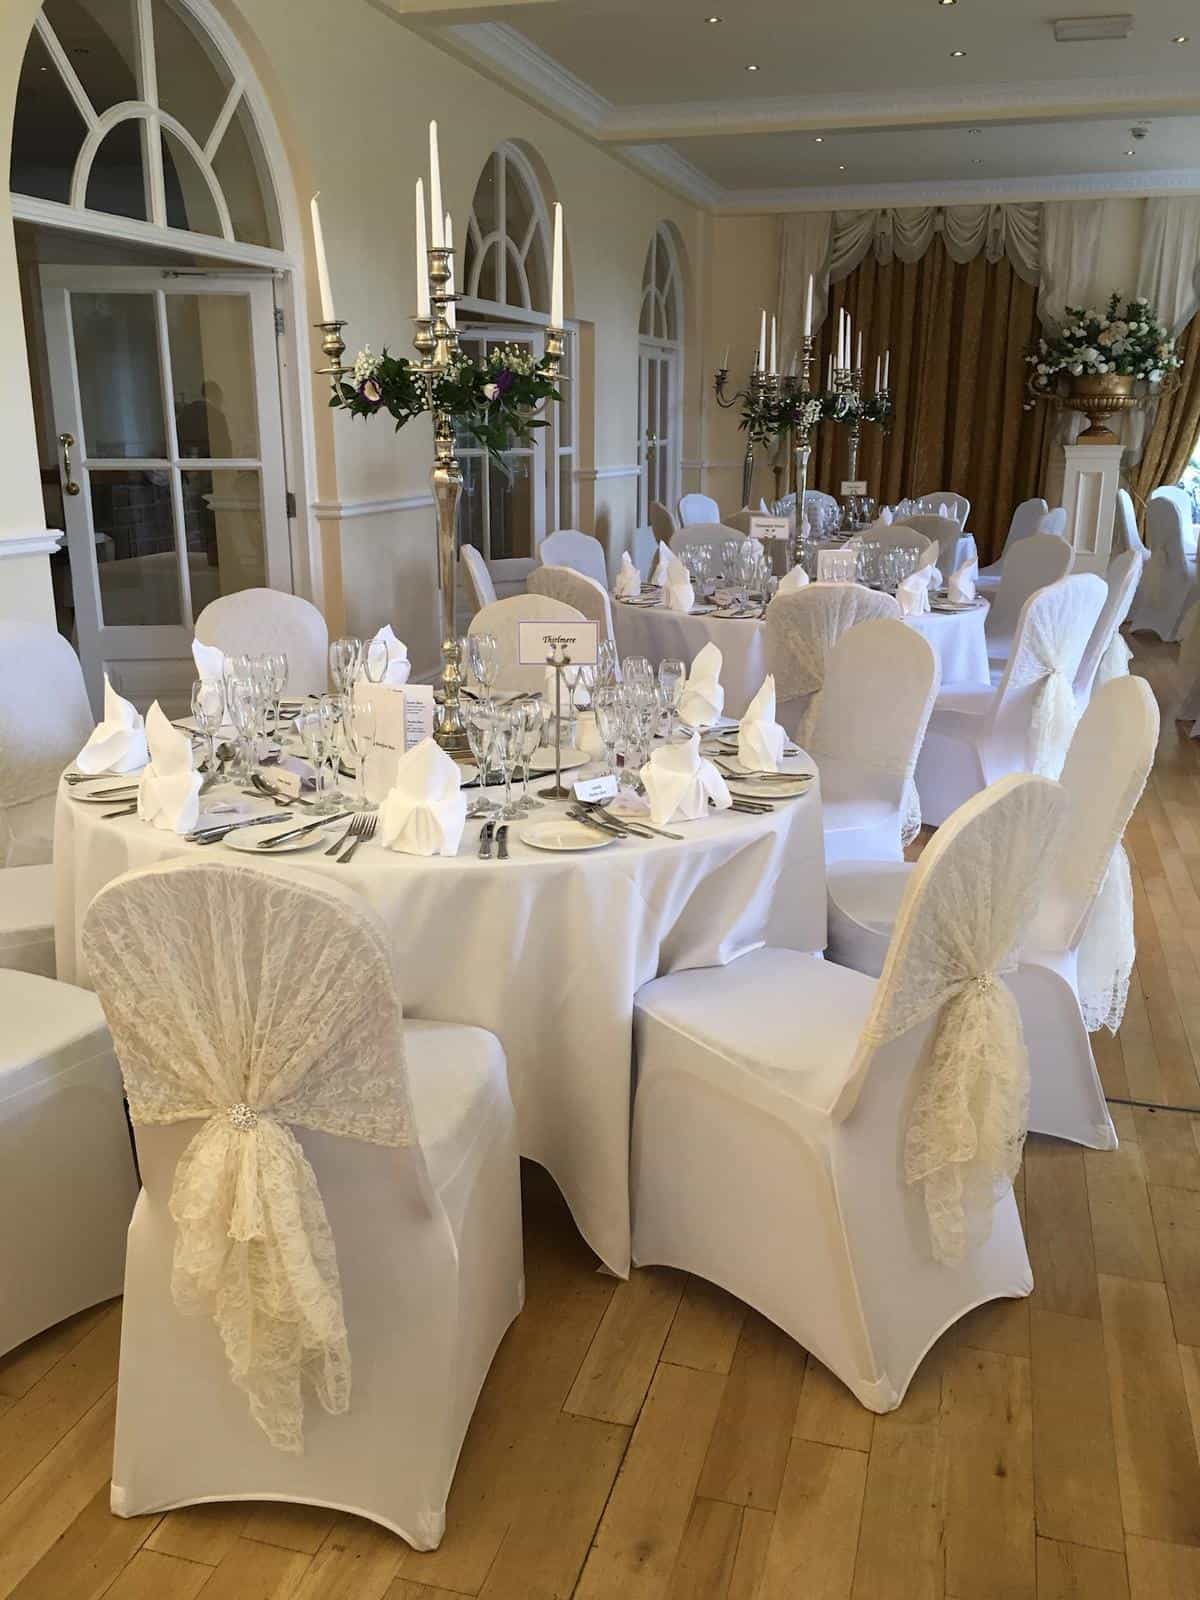 Wedding breakfast table with white table and chair linen with golden candelebra in centre and white lace hoods on backs of chairs